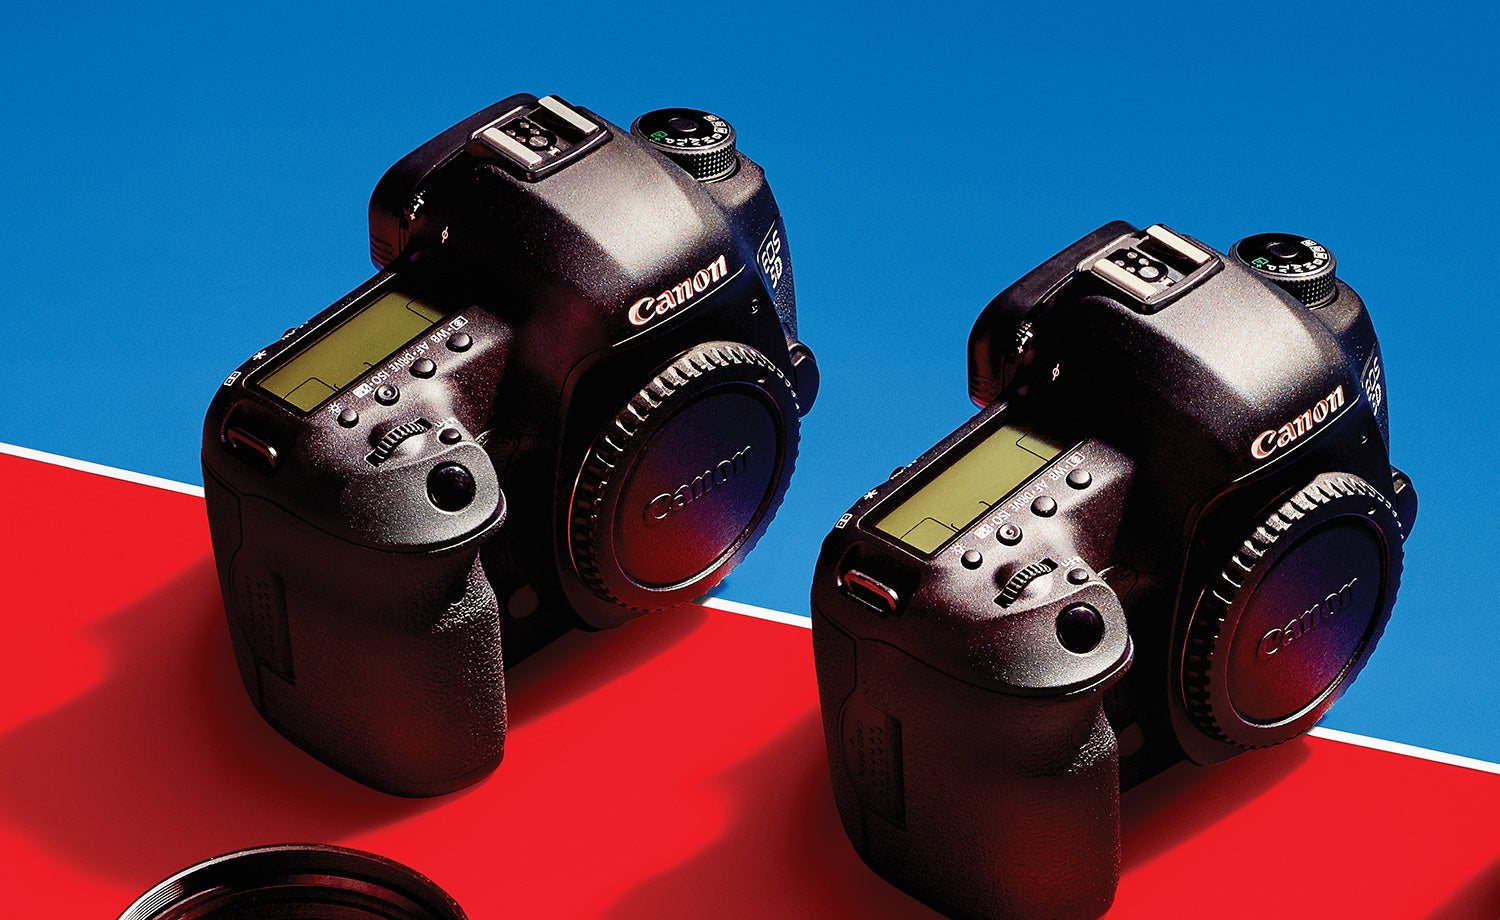 Two Canon 5D Mark III's